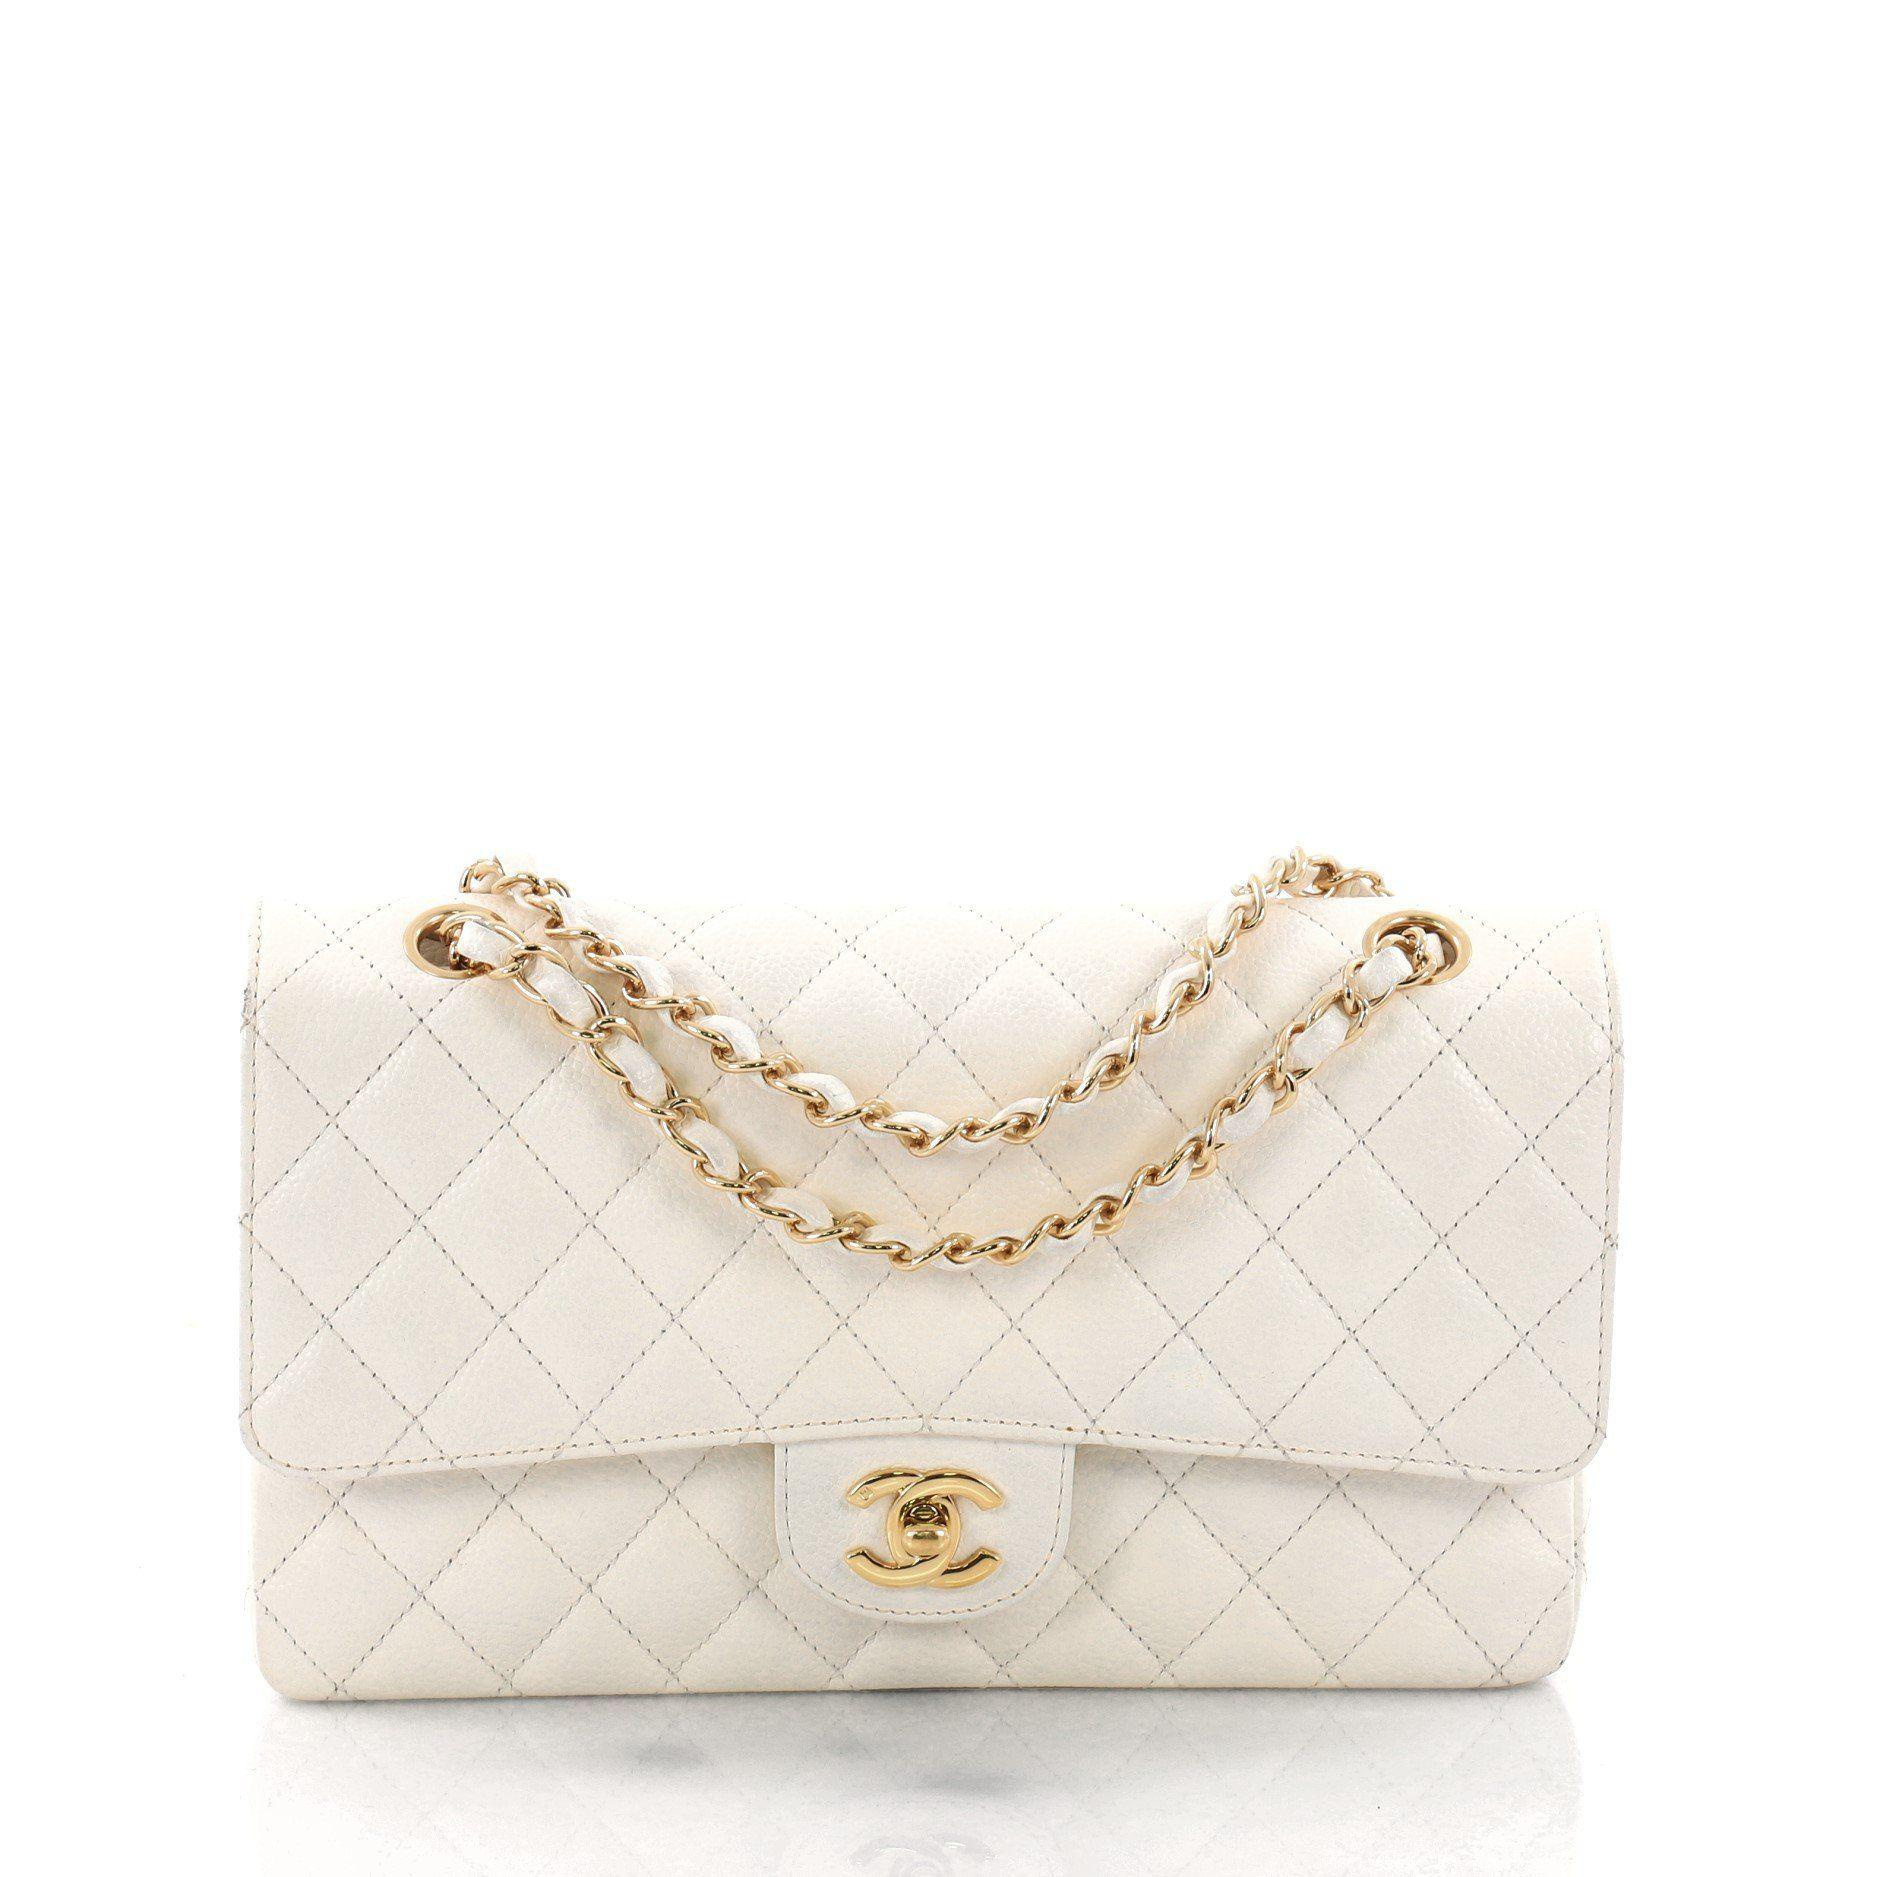 1d29f0155b2a5e Chanel. Women's Pre Owned Vintage Classic Double Flap Bag Quilted Caviar  Medium